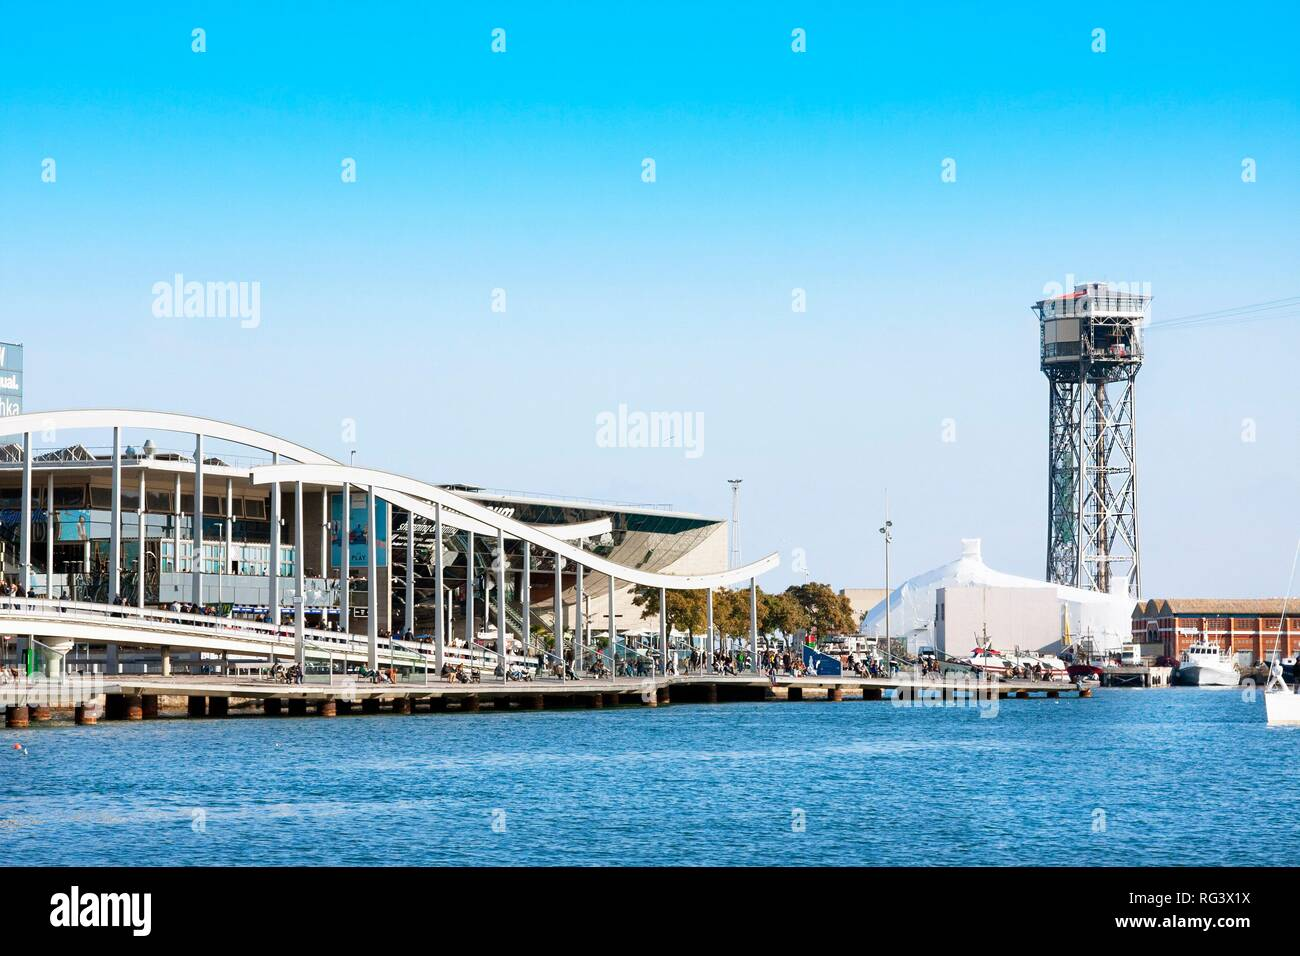 Barcelona, Spain - January 19, 2019: Port Vell in Barcelona with Maremagnum commercial center and cable car tower - Stock Image